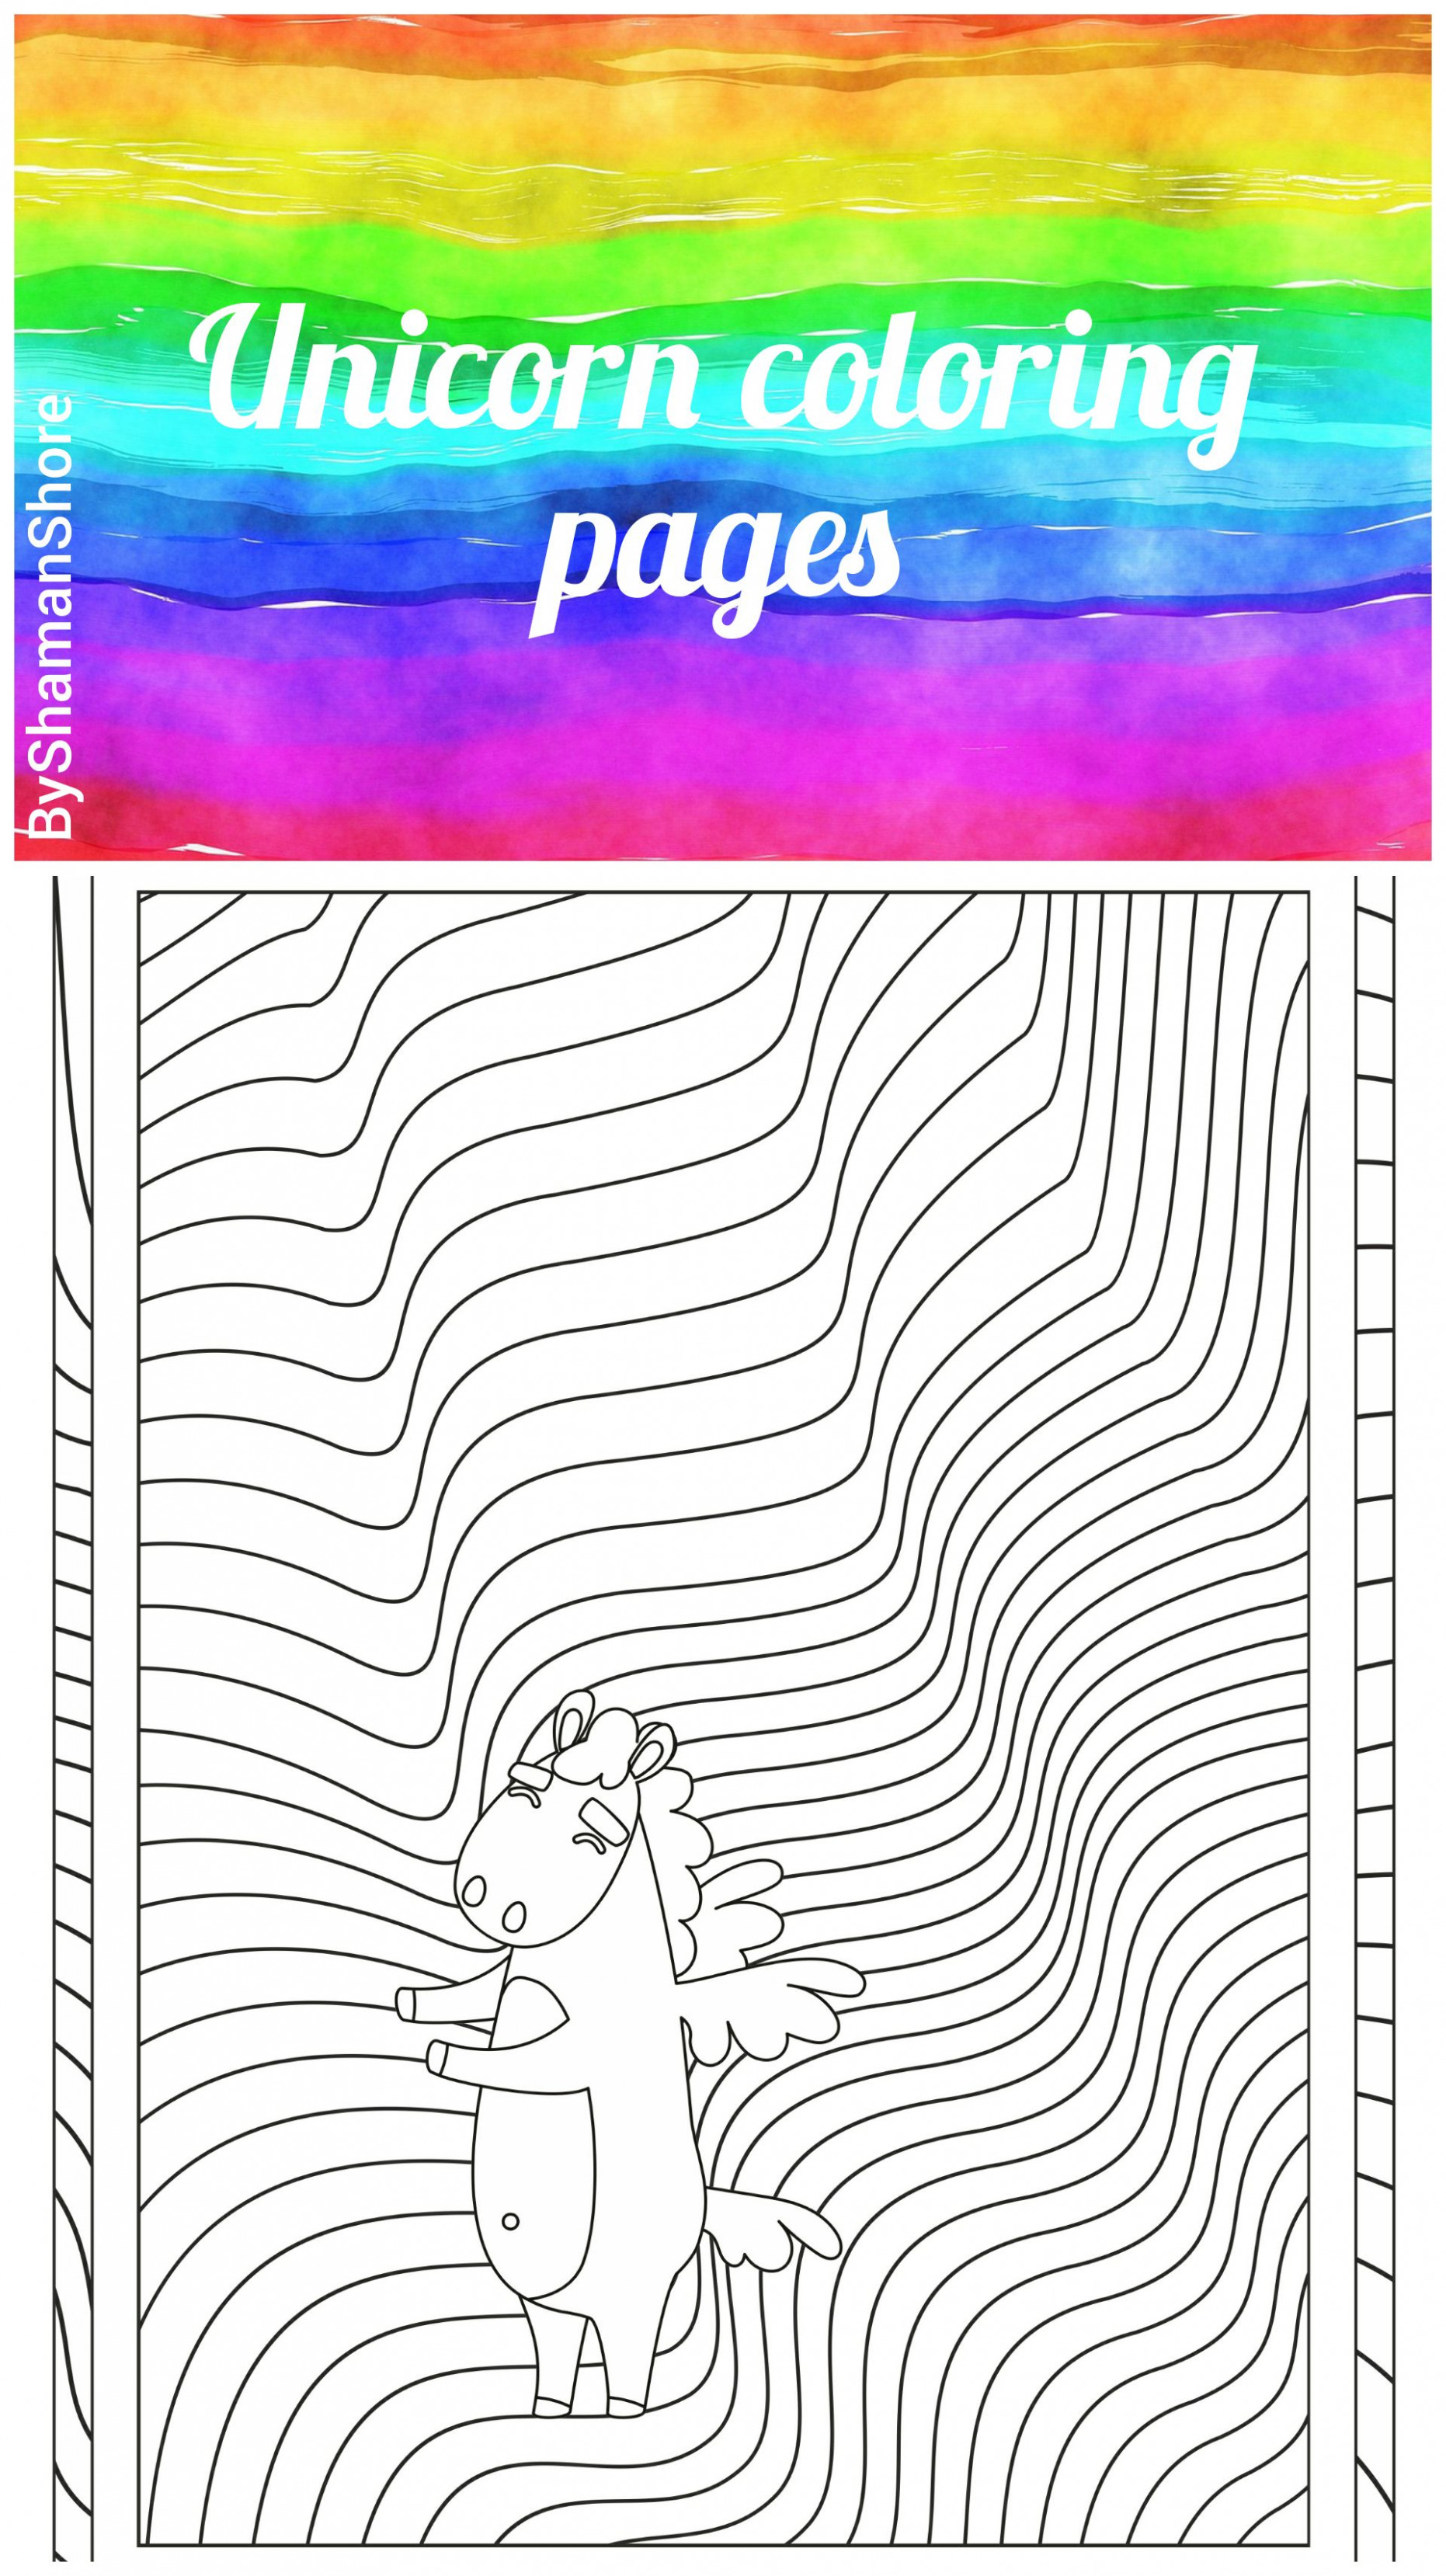 12 Unicorn Coloring Pages Printable, Digital Coloring Book Pdf ..